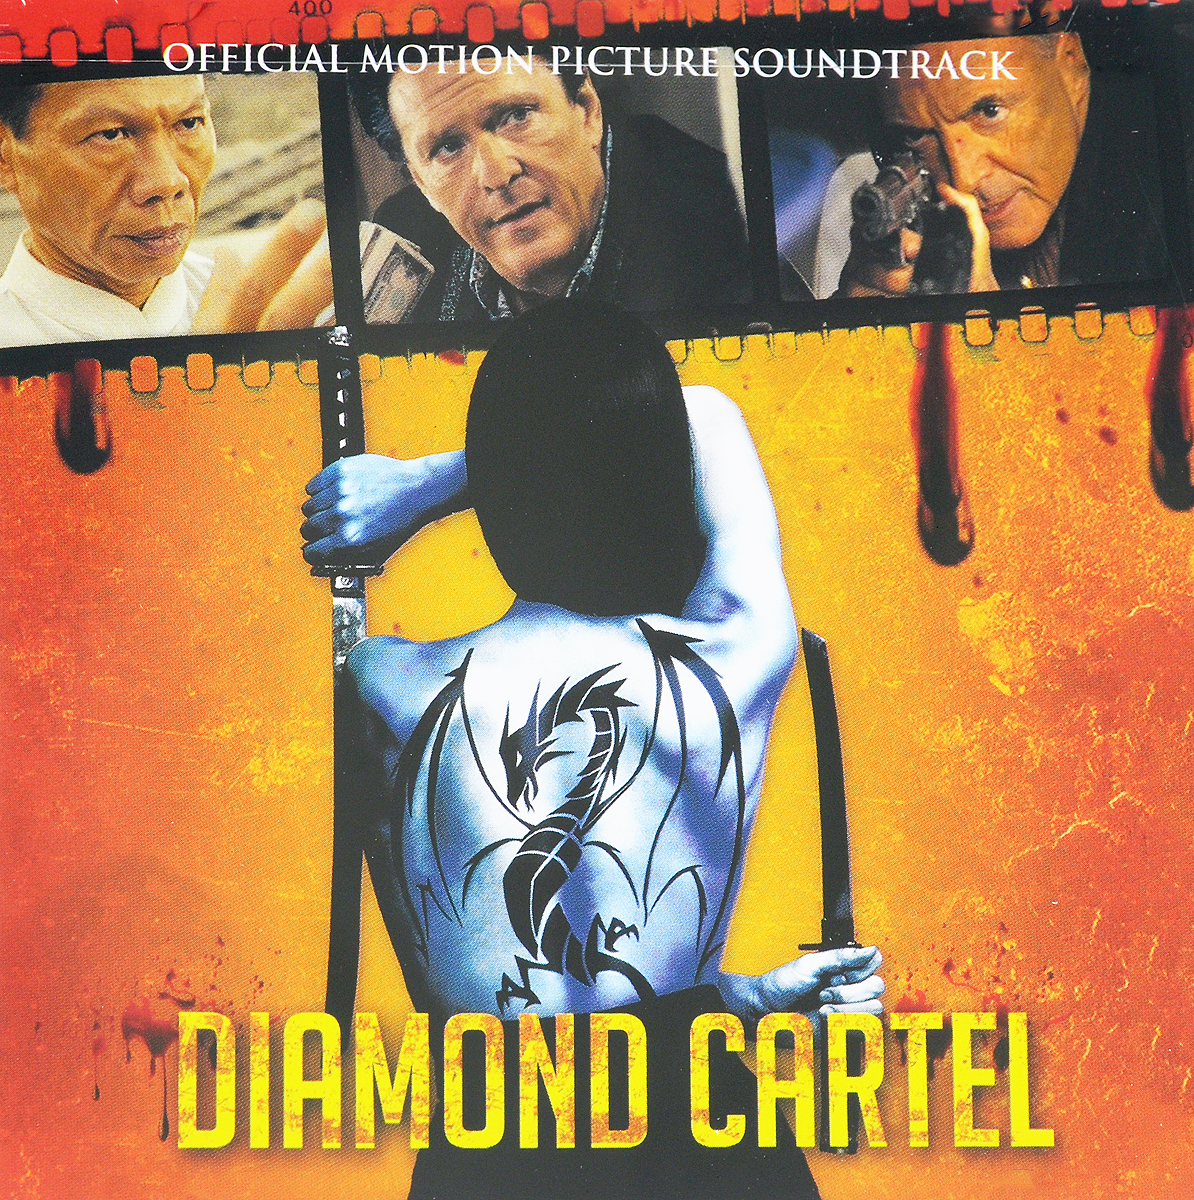 Diamond Cartel cleopatra